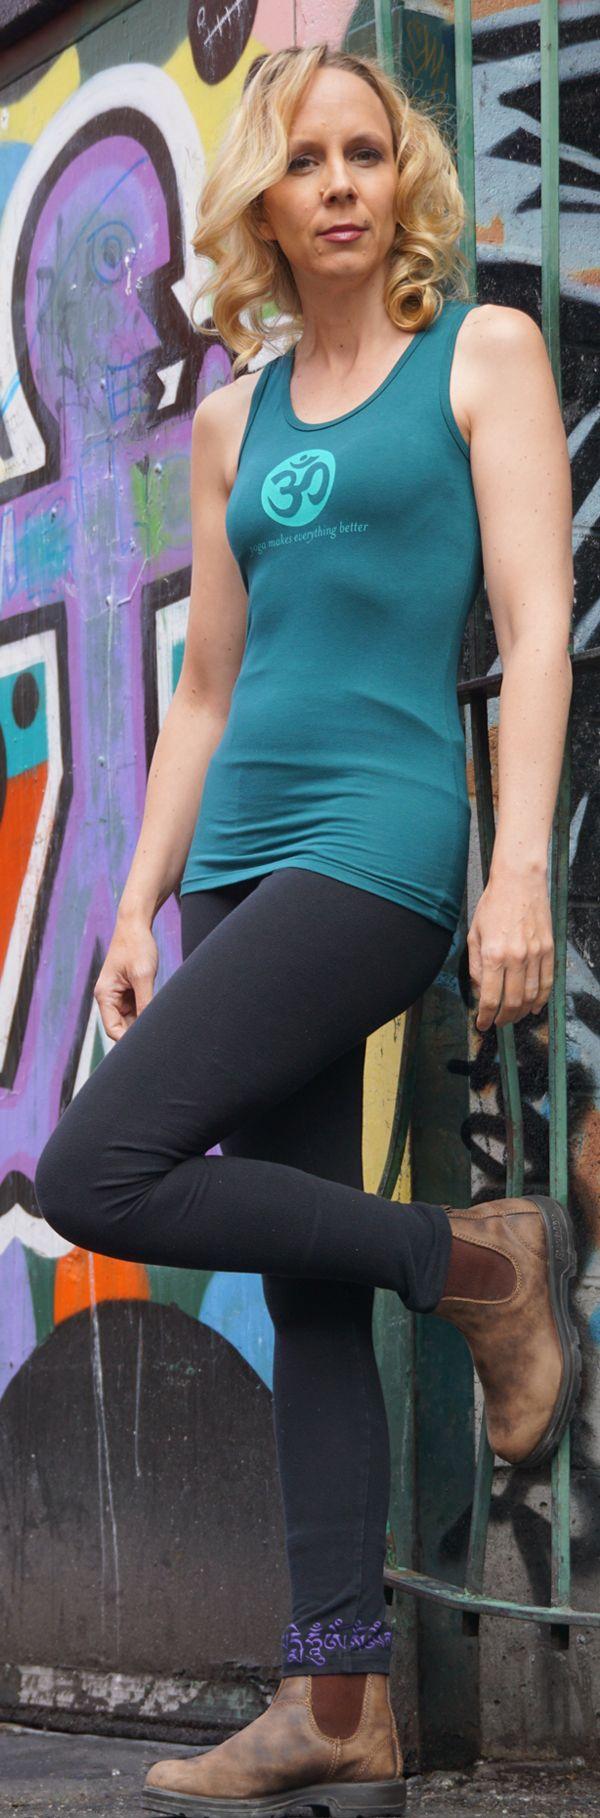 Teal Tank with OM and Yoga Makes Everything Better from Squeezed Yoga Clothing http://squeezed.ca/shop/teal-tank-with-om-and-yoga-makes-everything-better